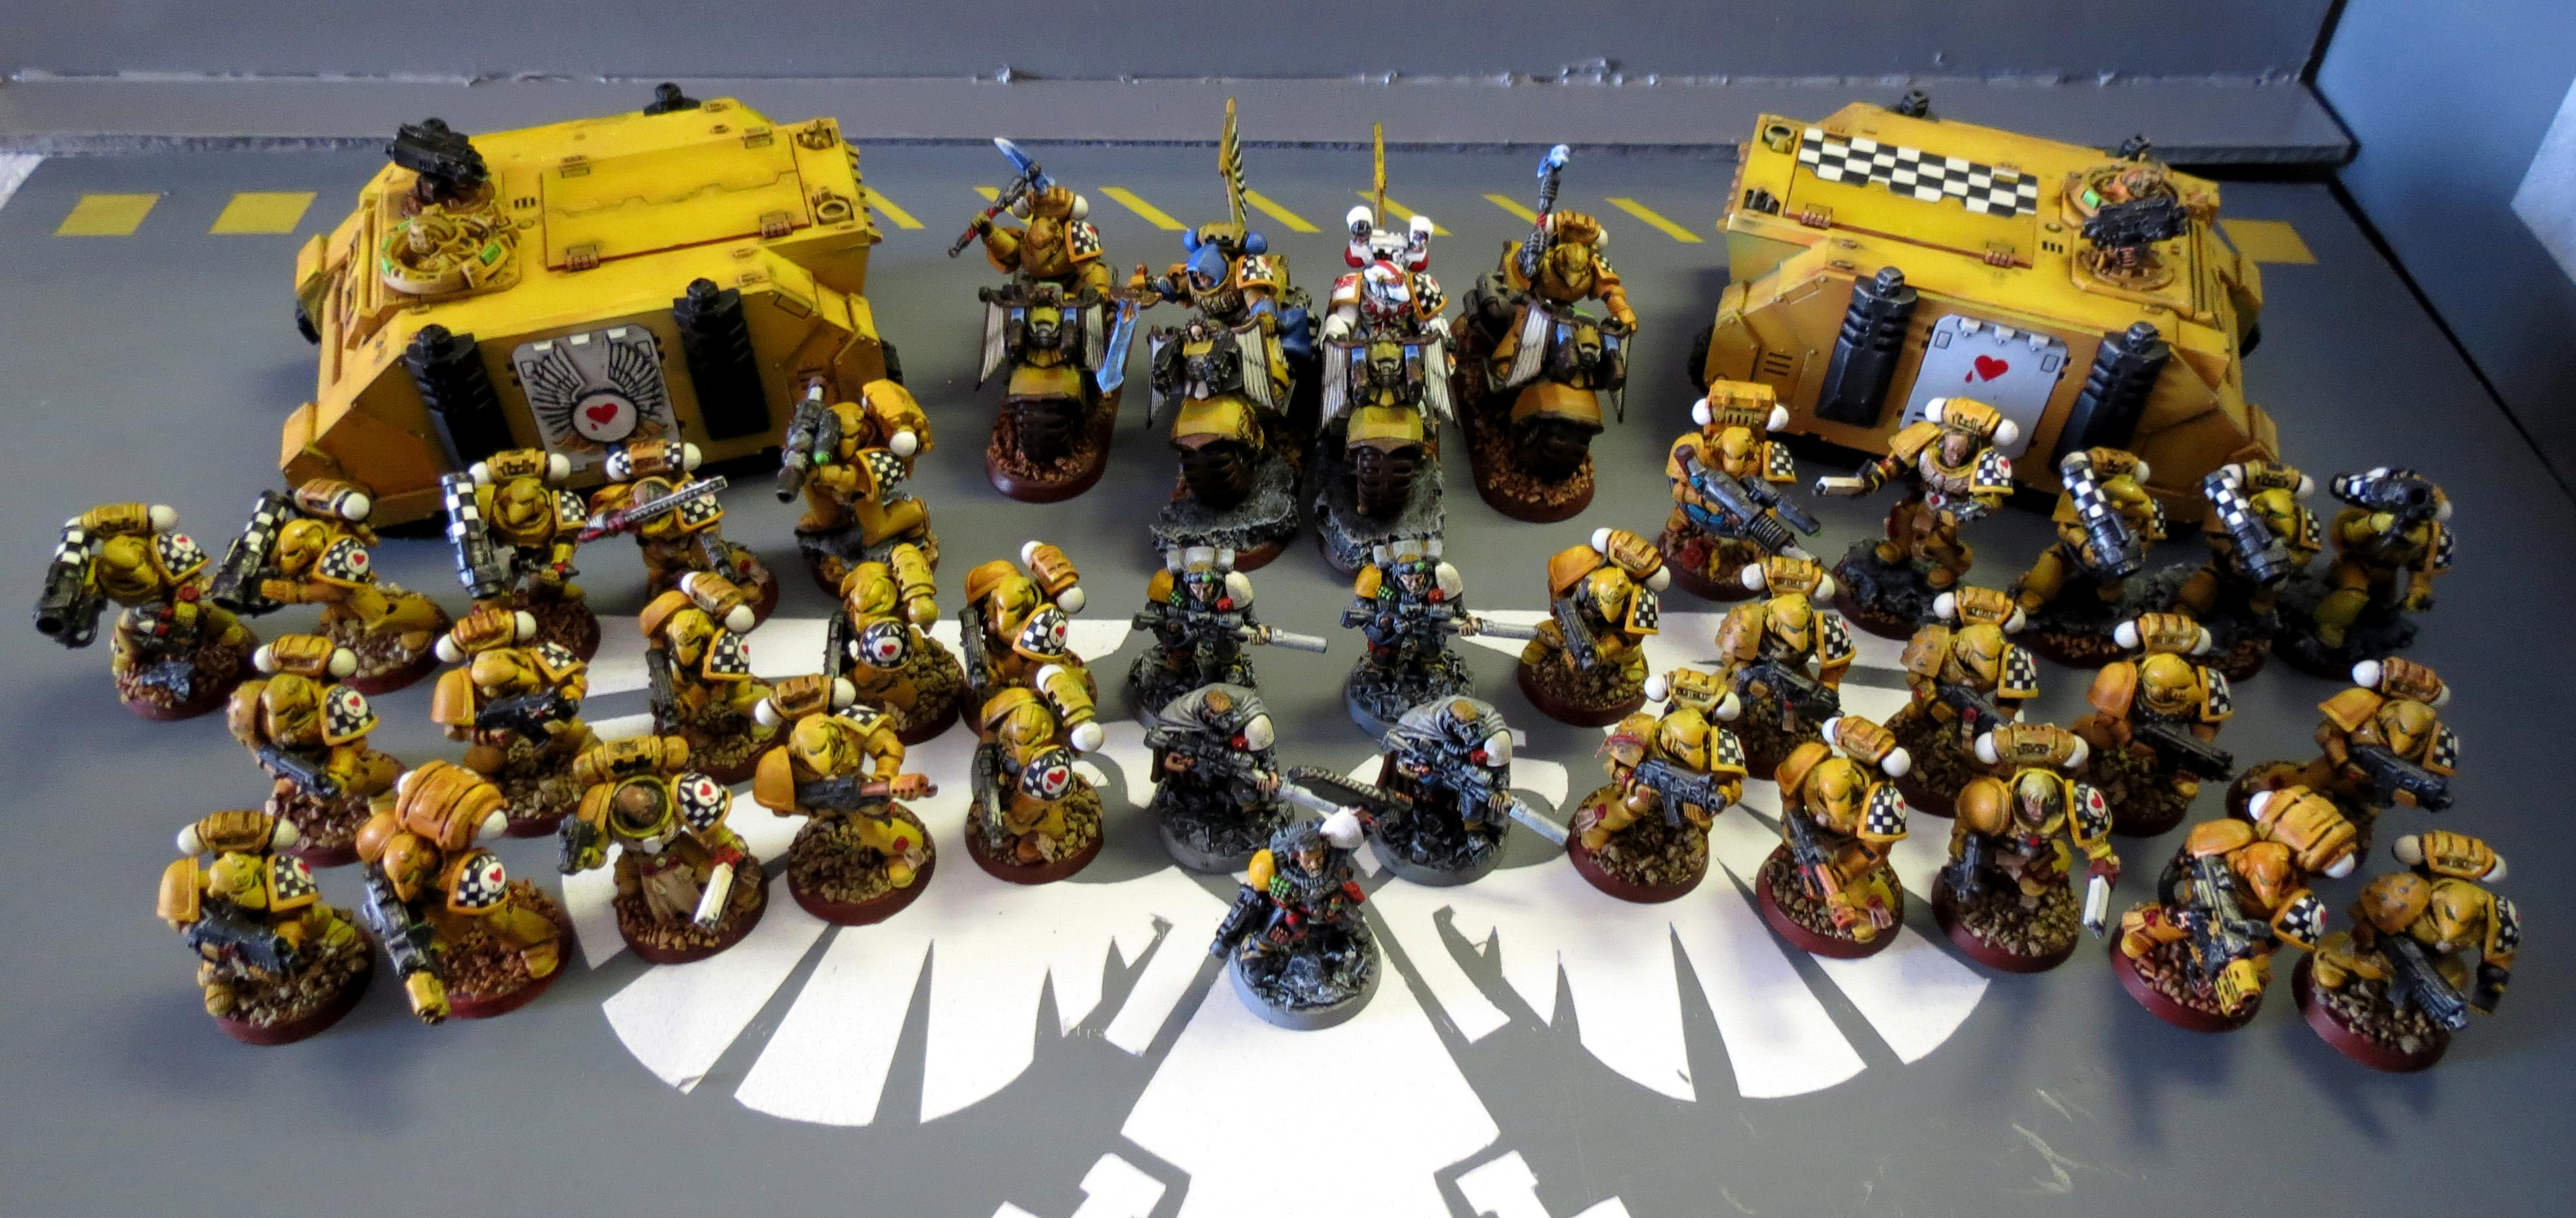 2013, Adepticon, Lamenters, Space Marines, Warhammer 40,000